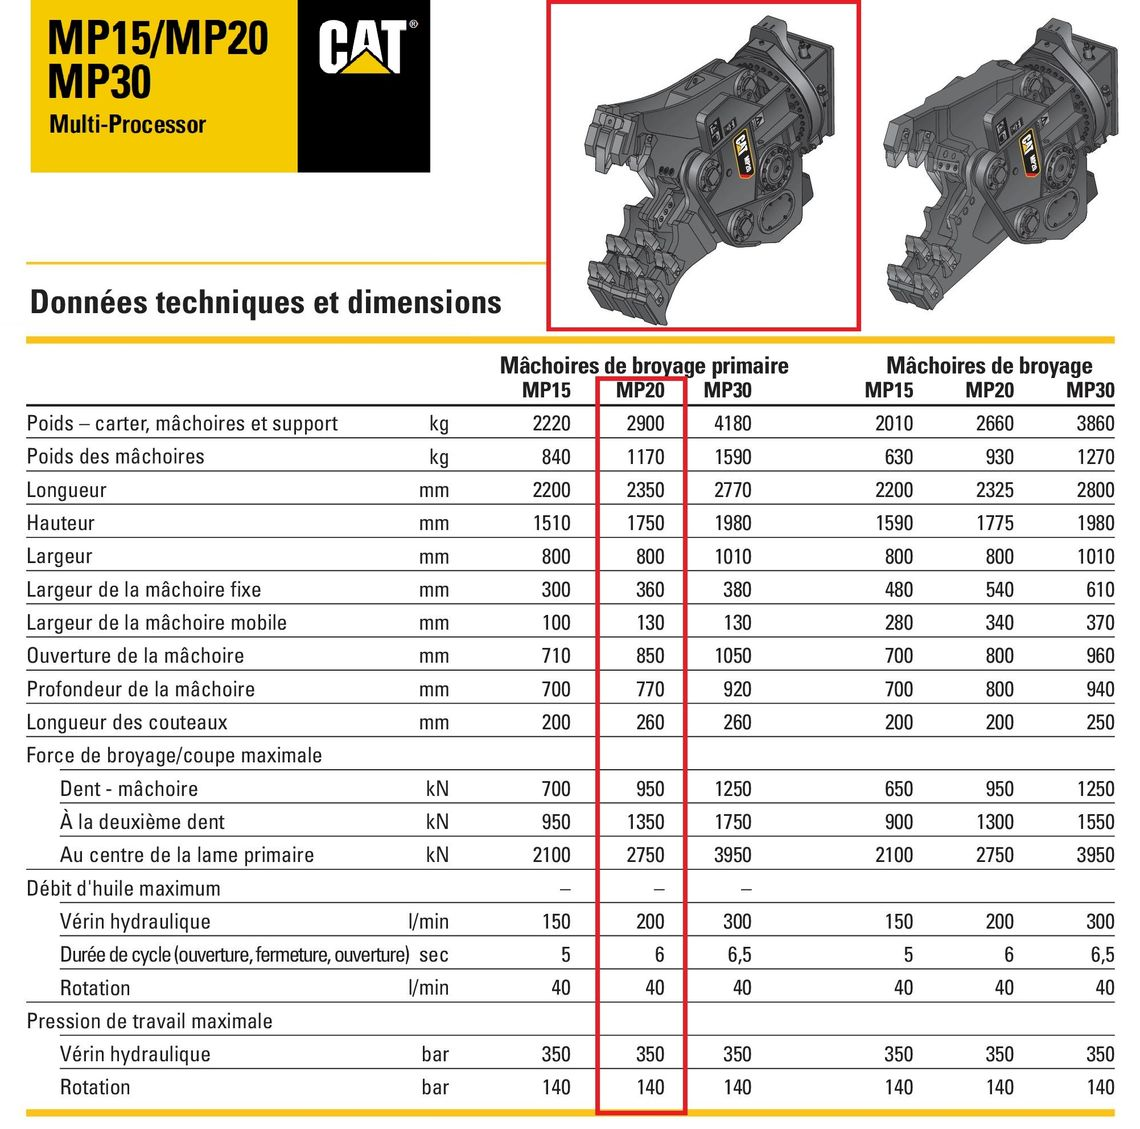 Caterpillar MP20